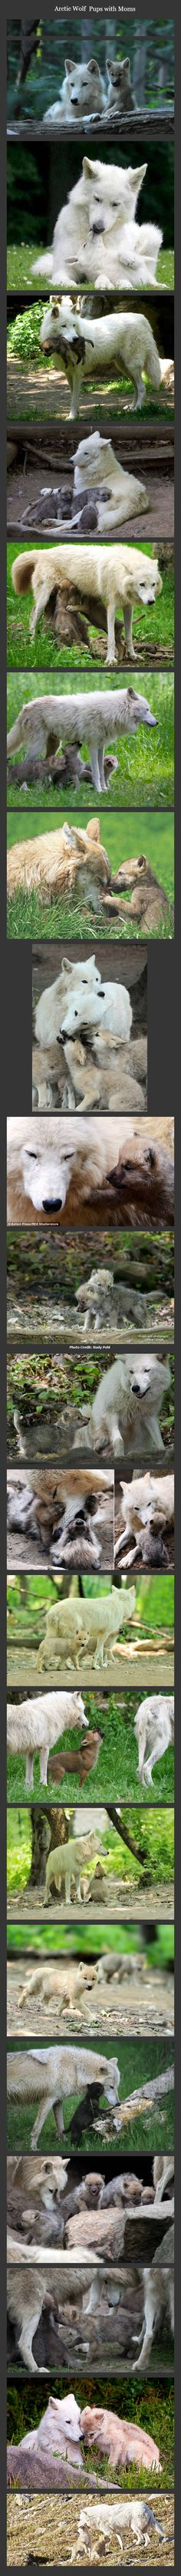 Arctic wolves and their pups                                                                                                                                                                                 More